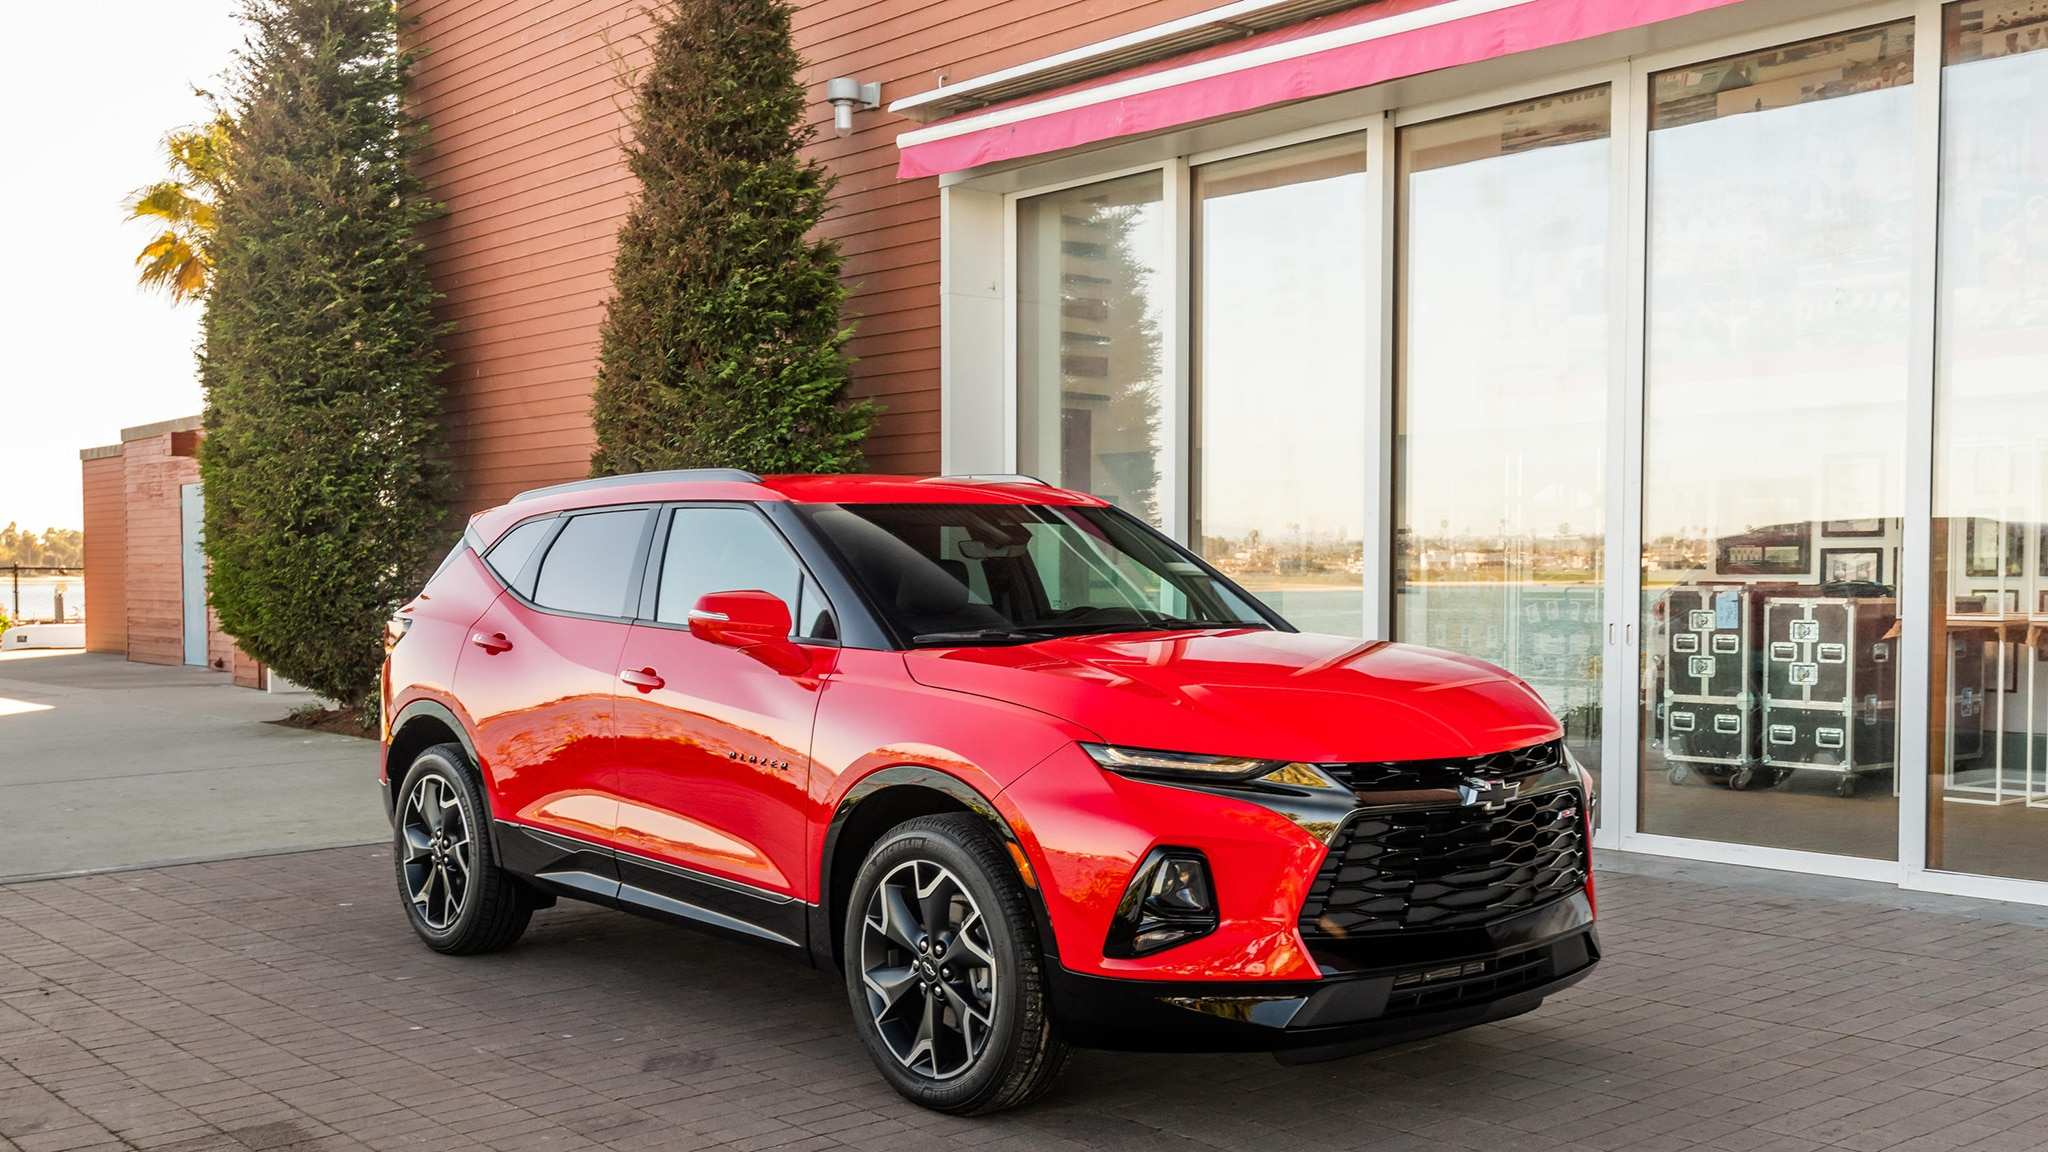 74 All New Chevrolet Blazer Xl 2020 Engine